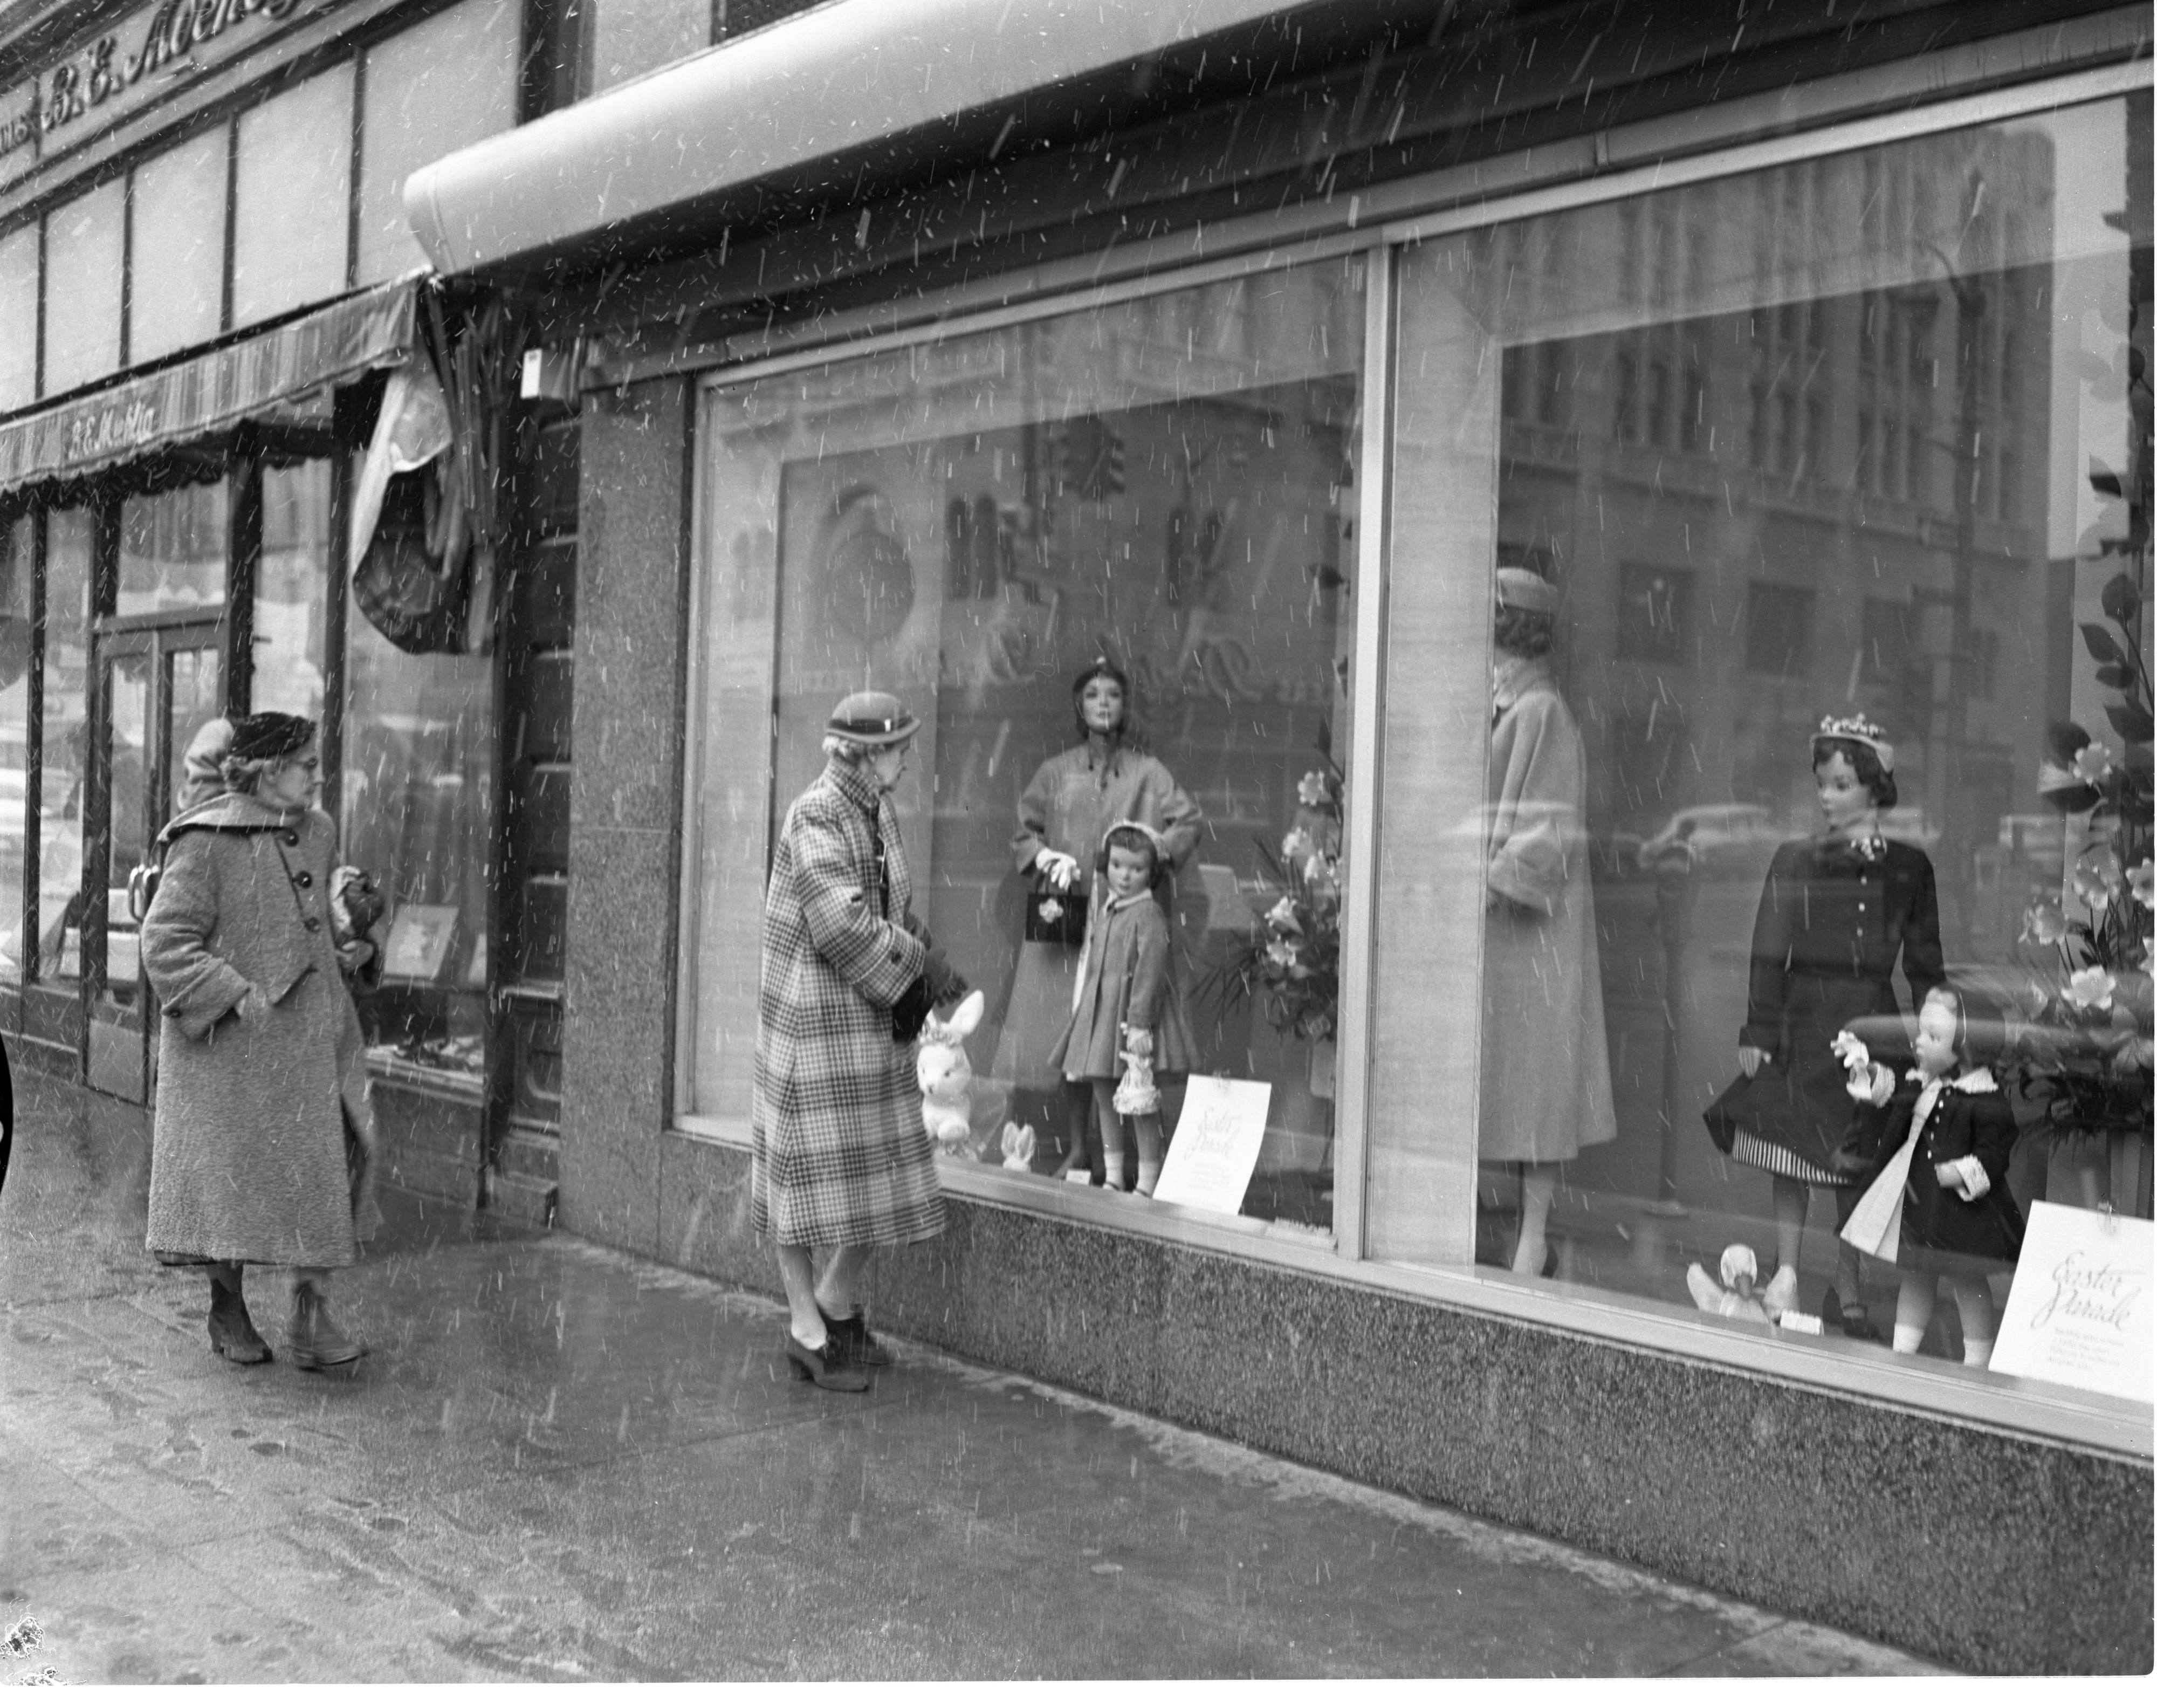 Window Shoppers Outside Of Goodyear's Department Store, March 1956 image